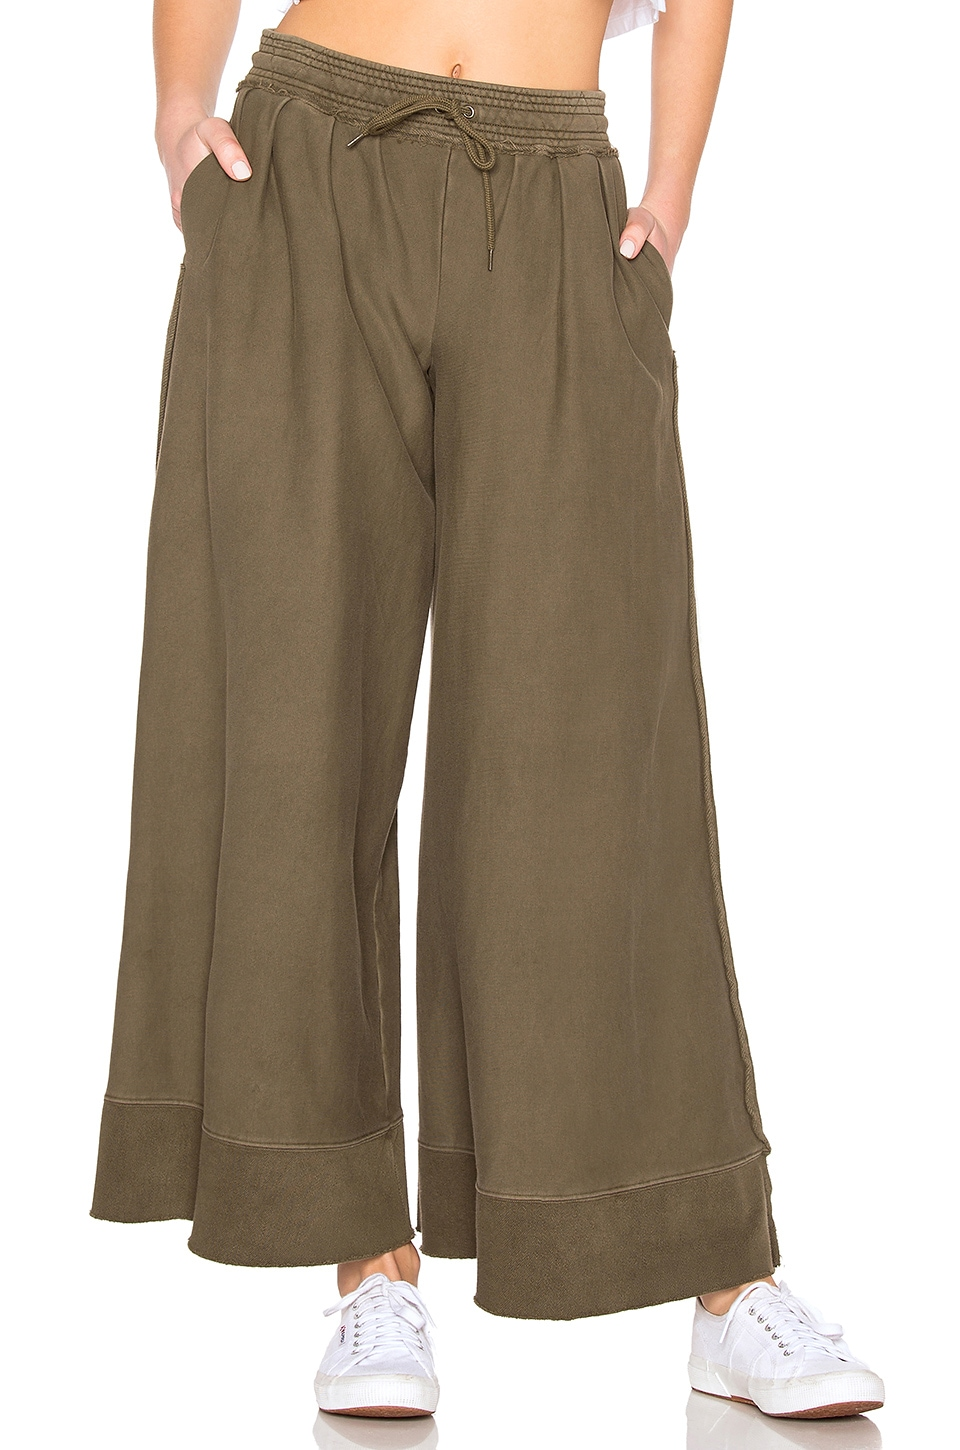 Free People Movement Rocco Wide Leg Pant in Army